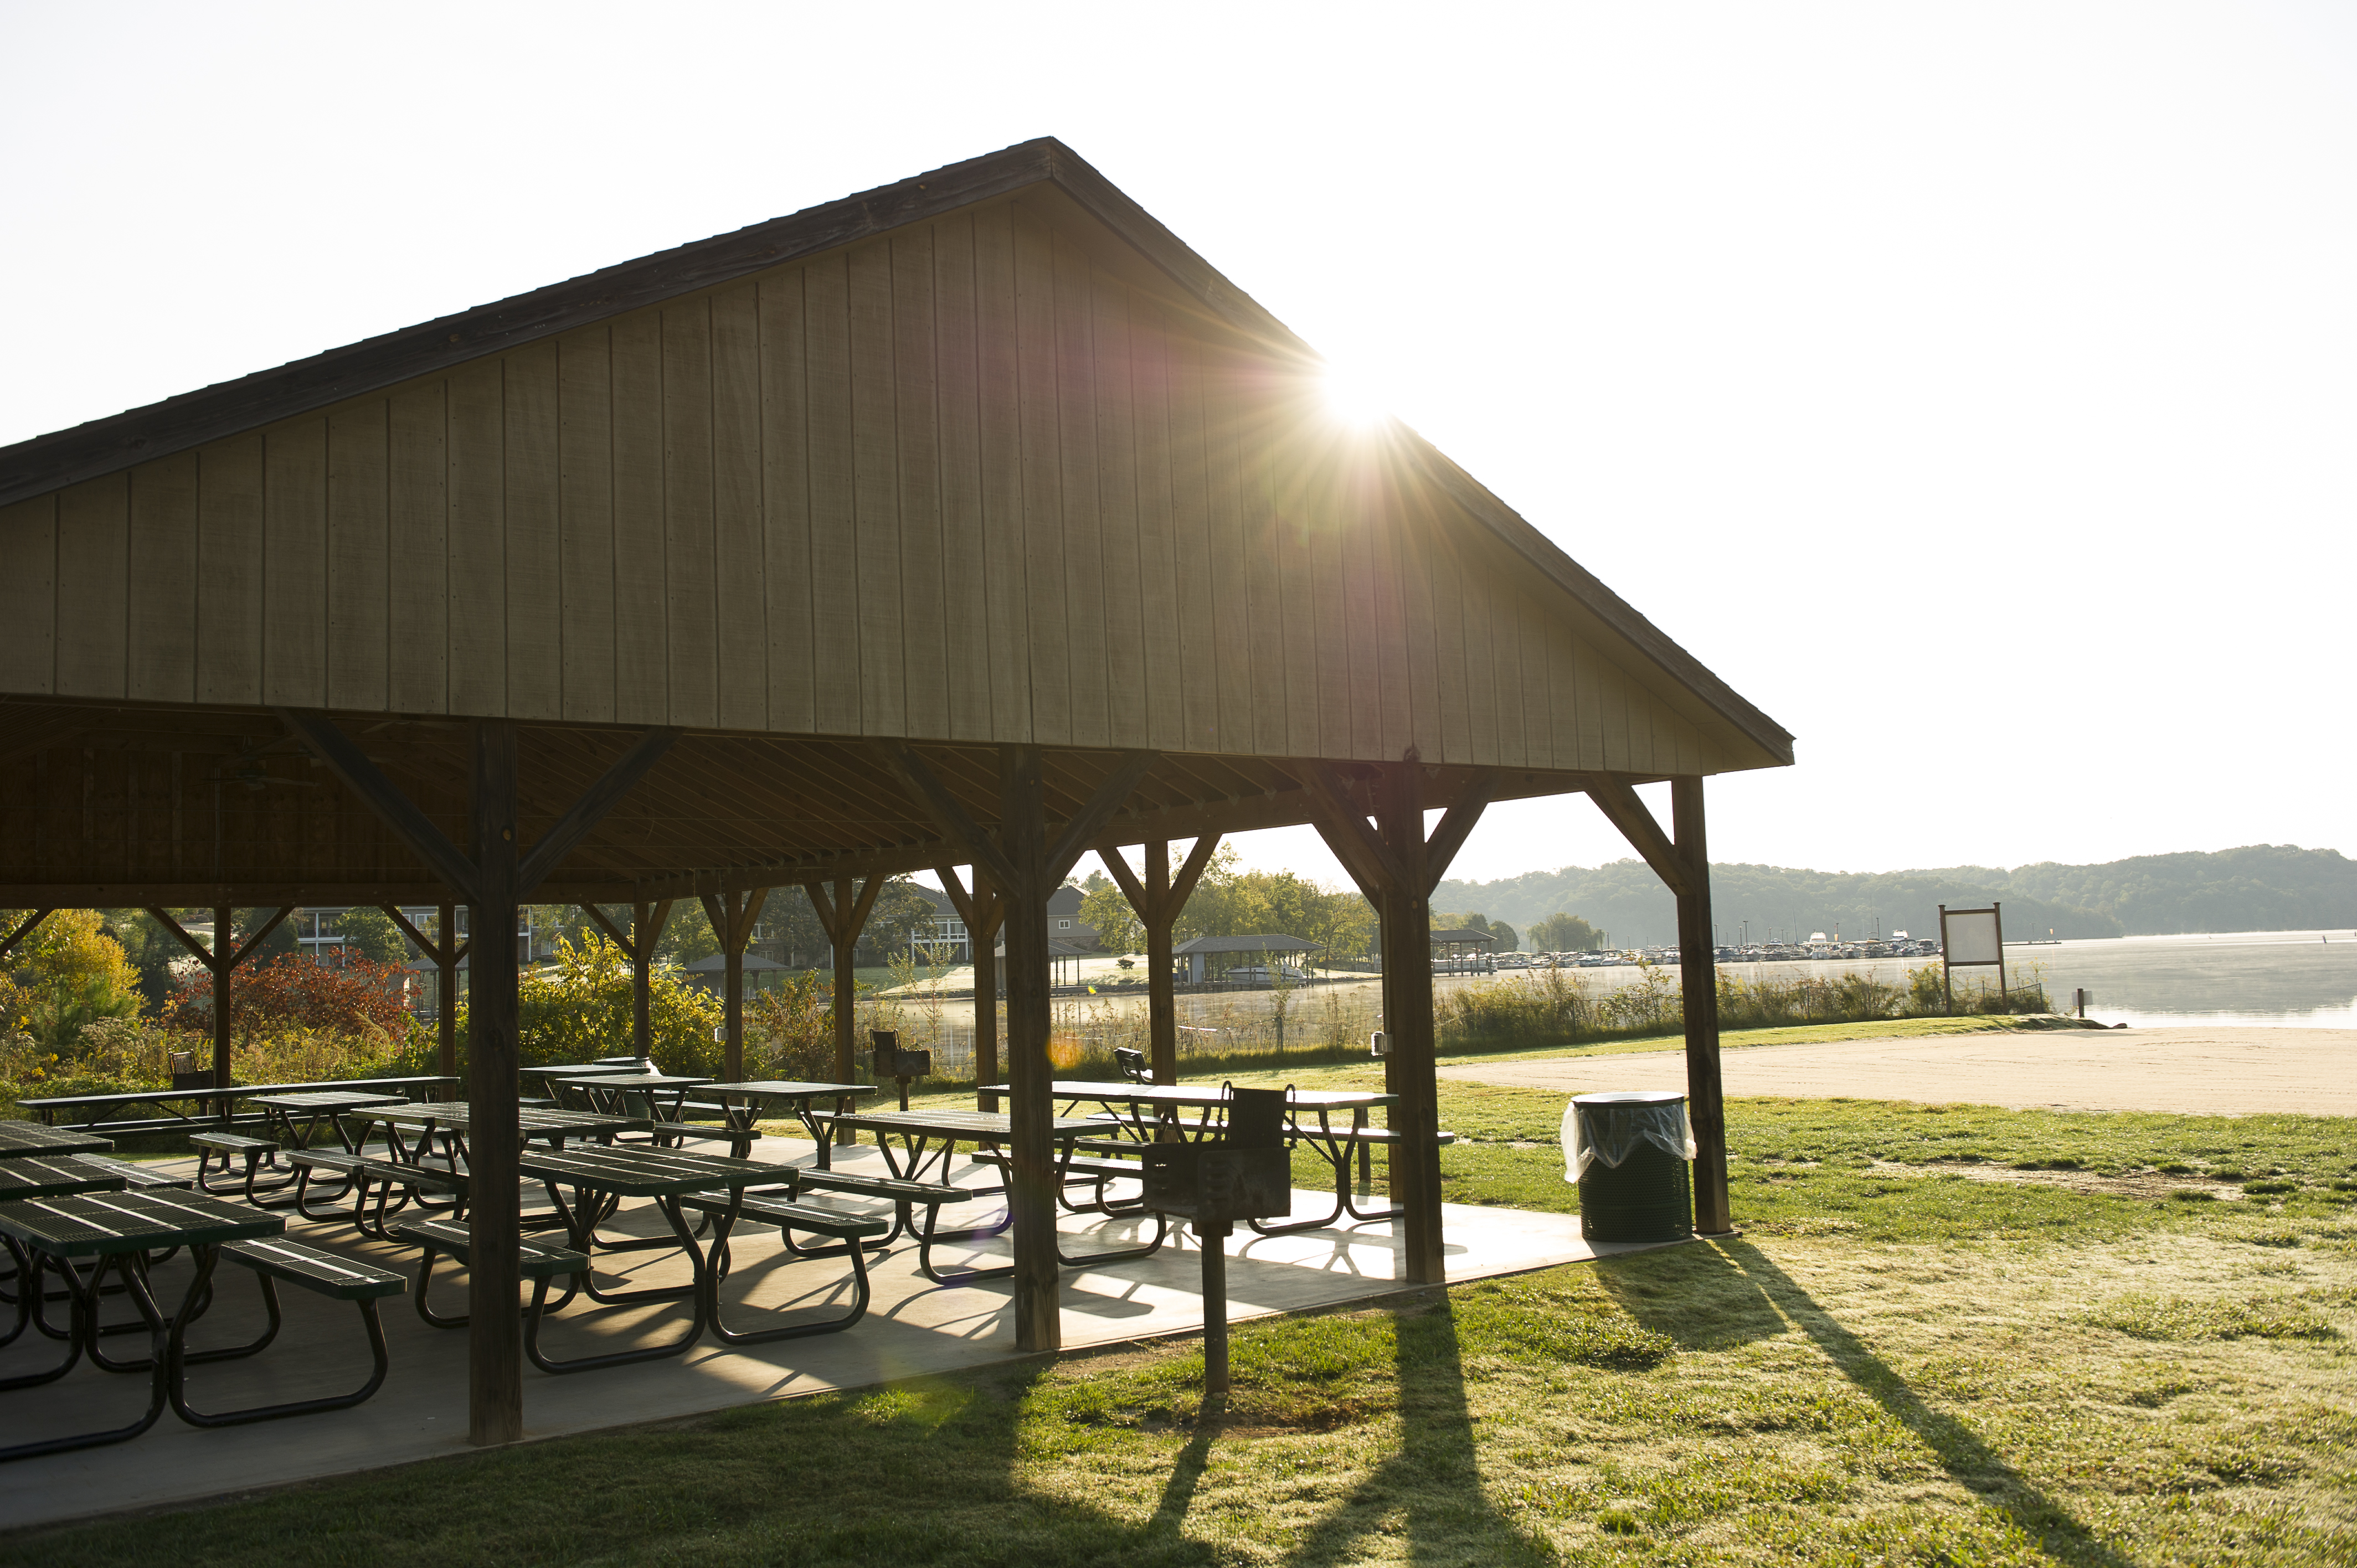 39. You get to host your family reunion at the Family Park and Beach Pavilion